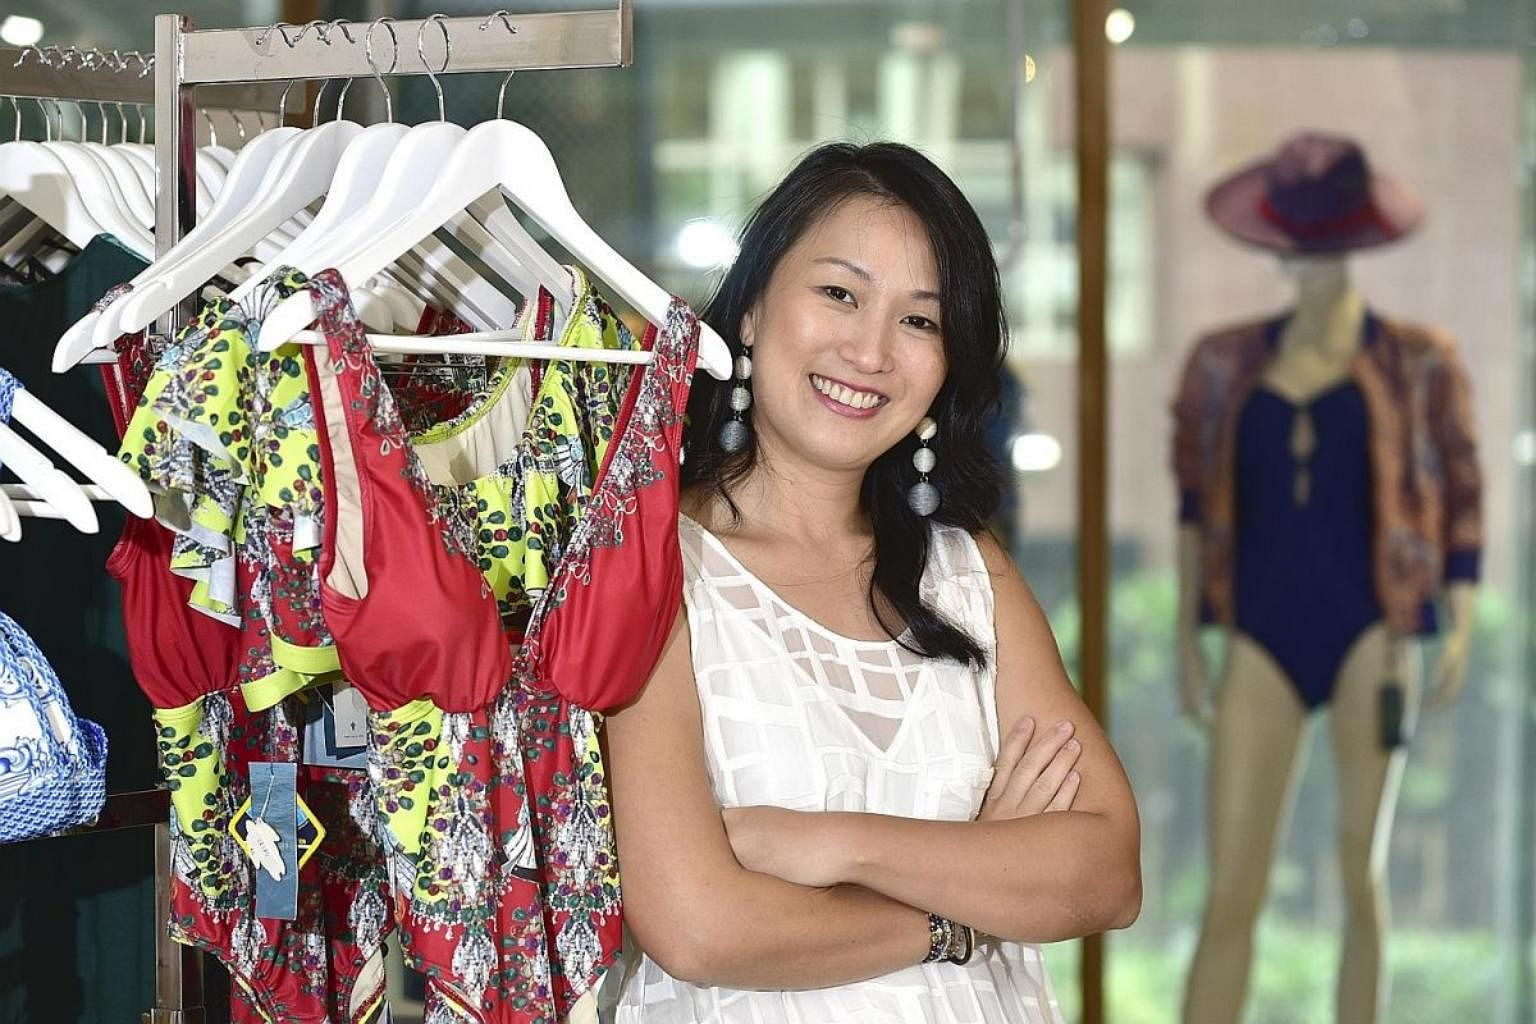 0ec7f198b1 K.Blu founder Lyn Rosmarin works with a team of four from her boutique at  Mandarin Gallery to create designs for the label's offerings, such as  swimwear.